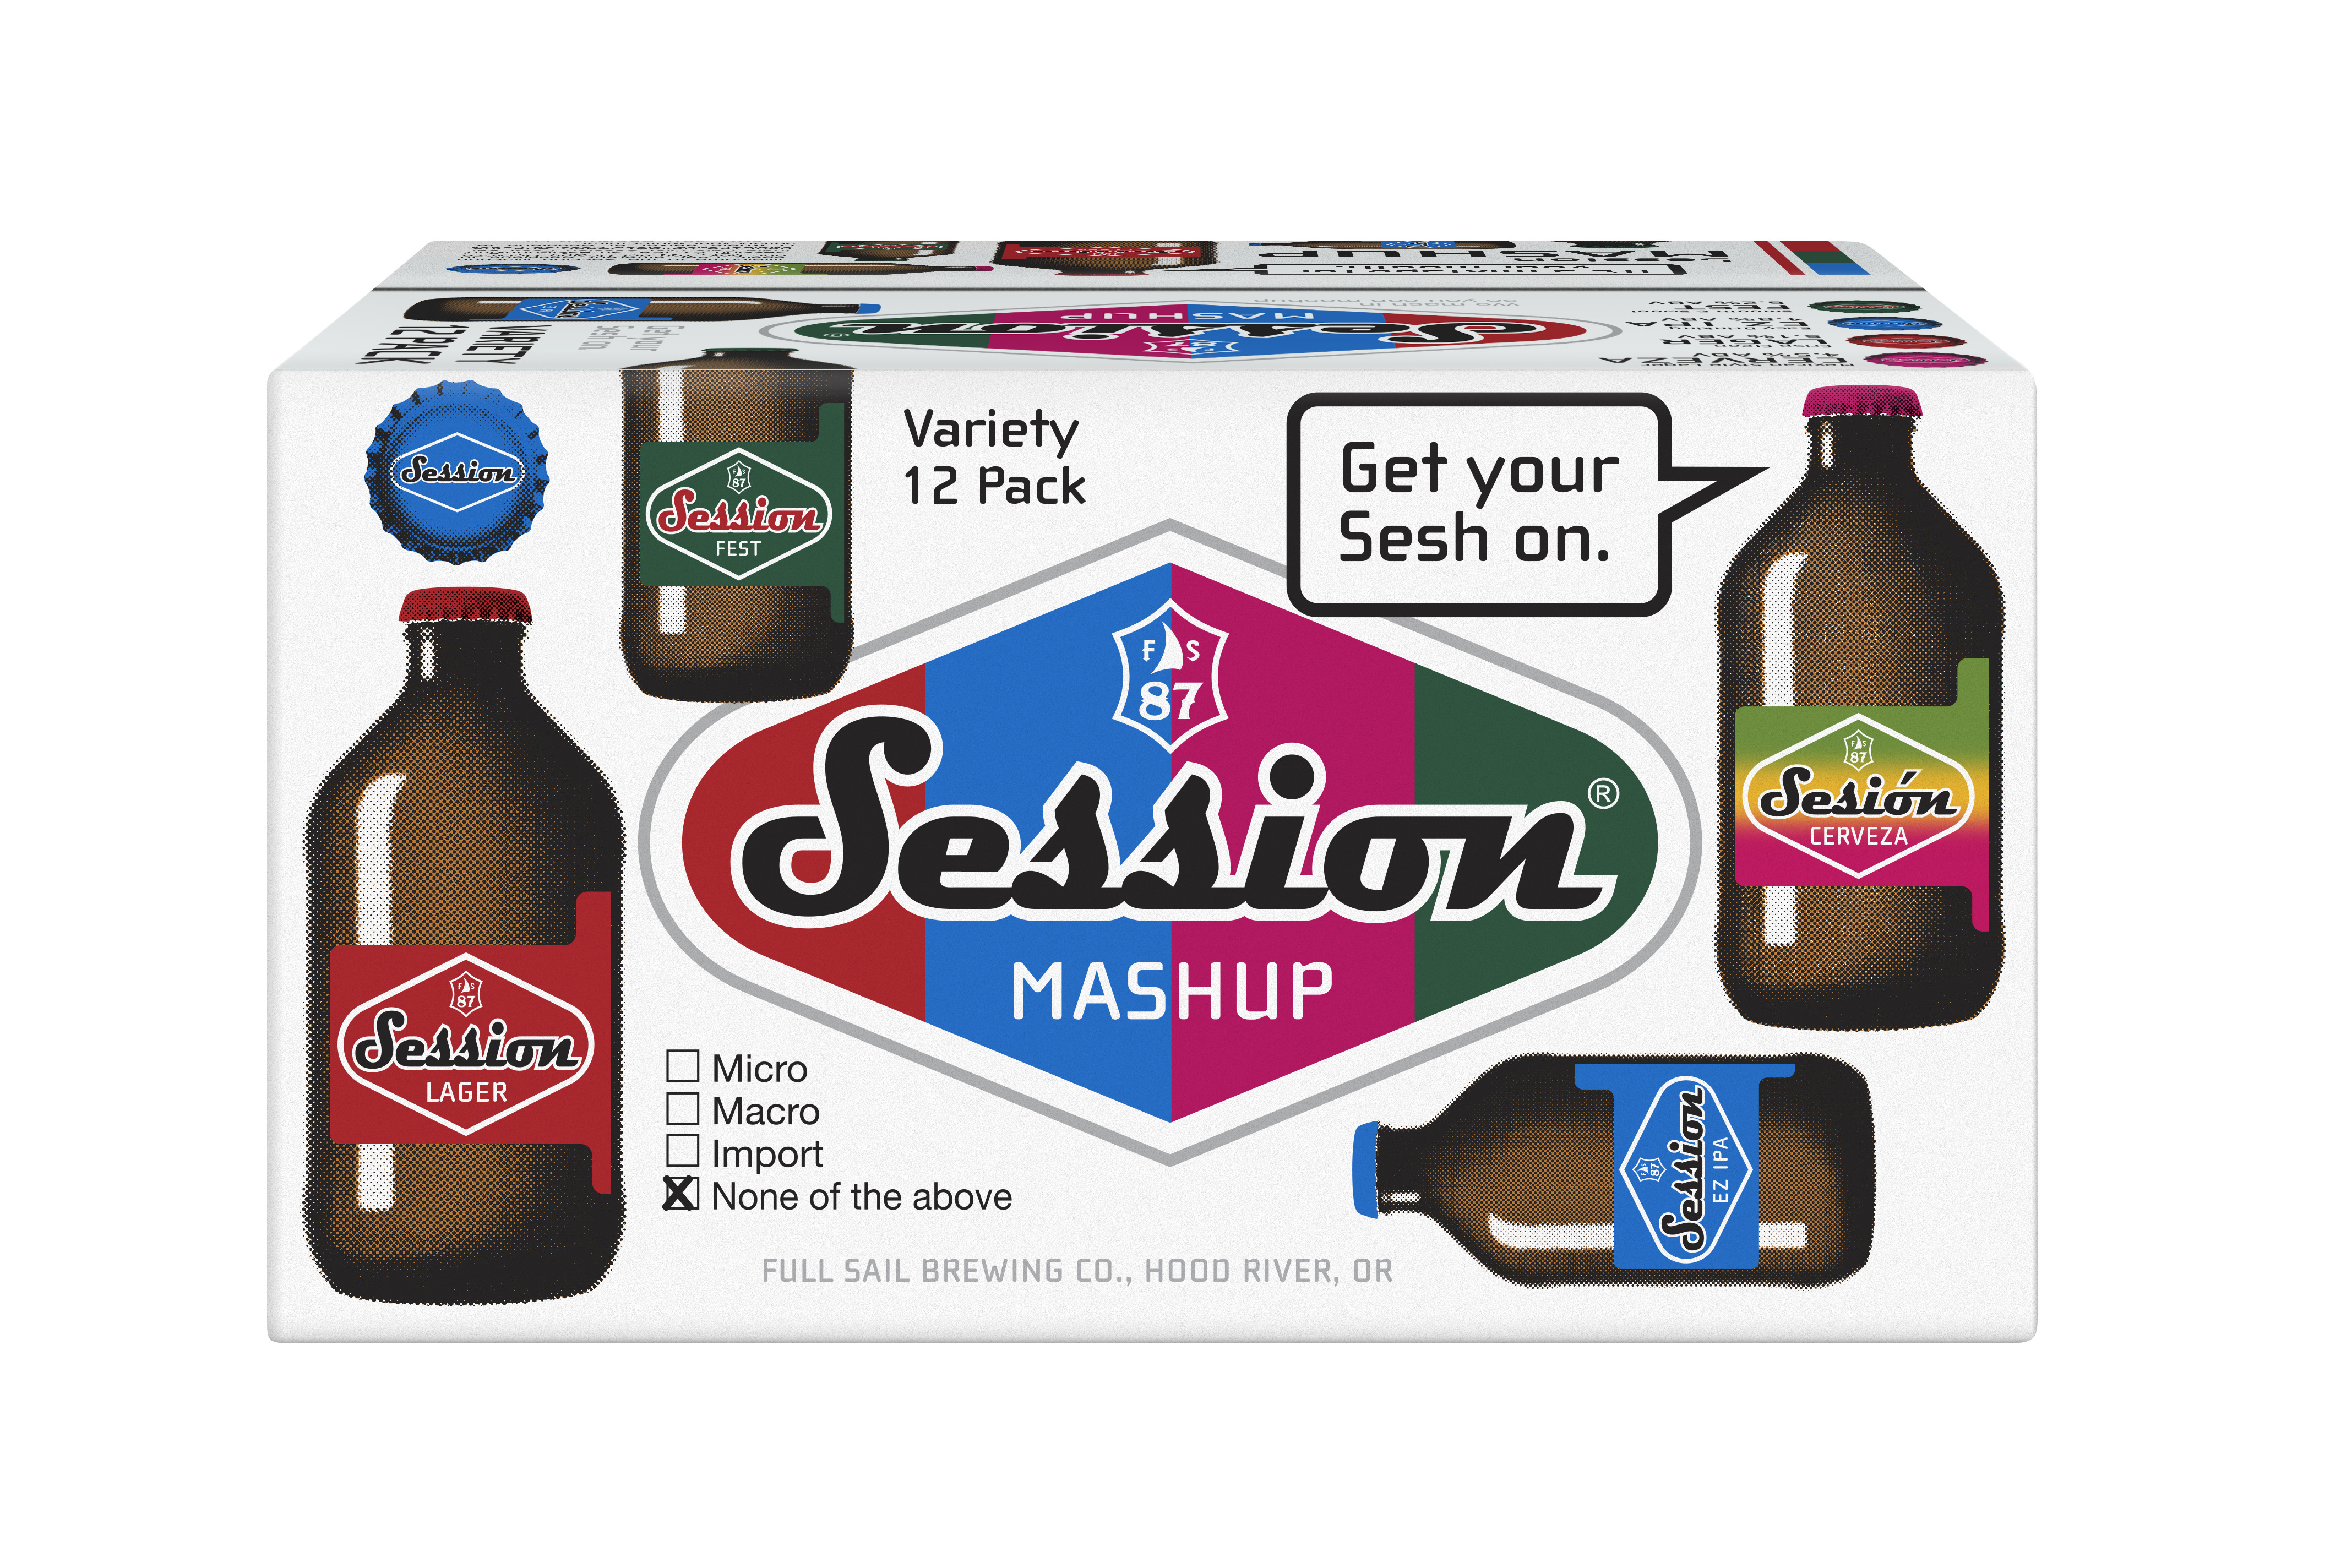 Our Latest Mashup is Bound to be a Smashup - Full Sail Brewery